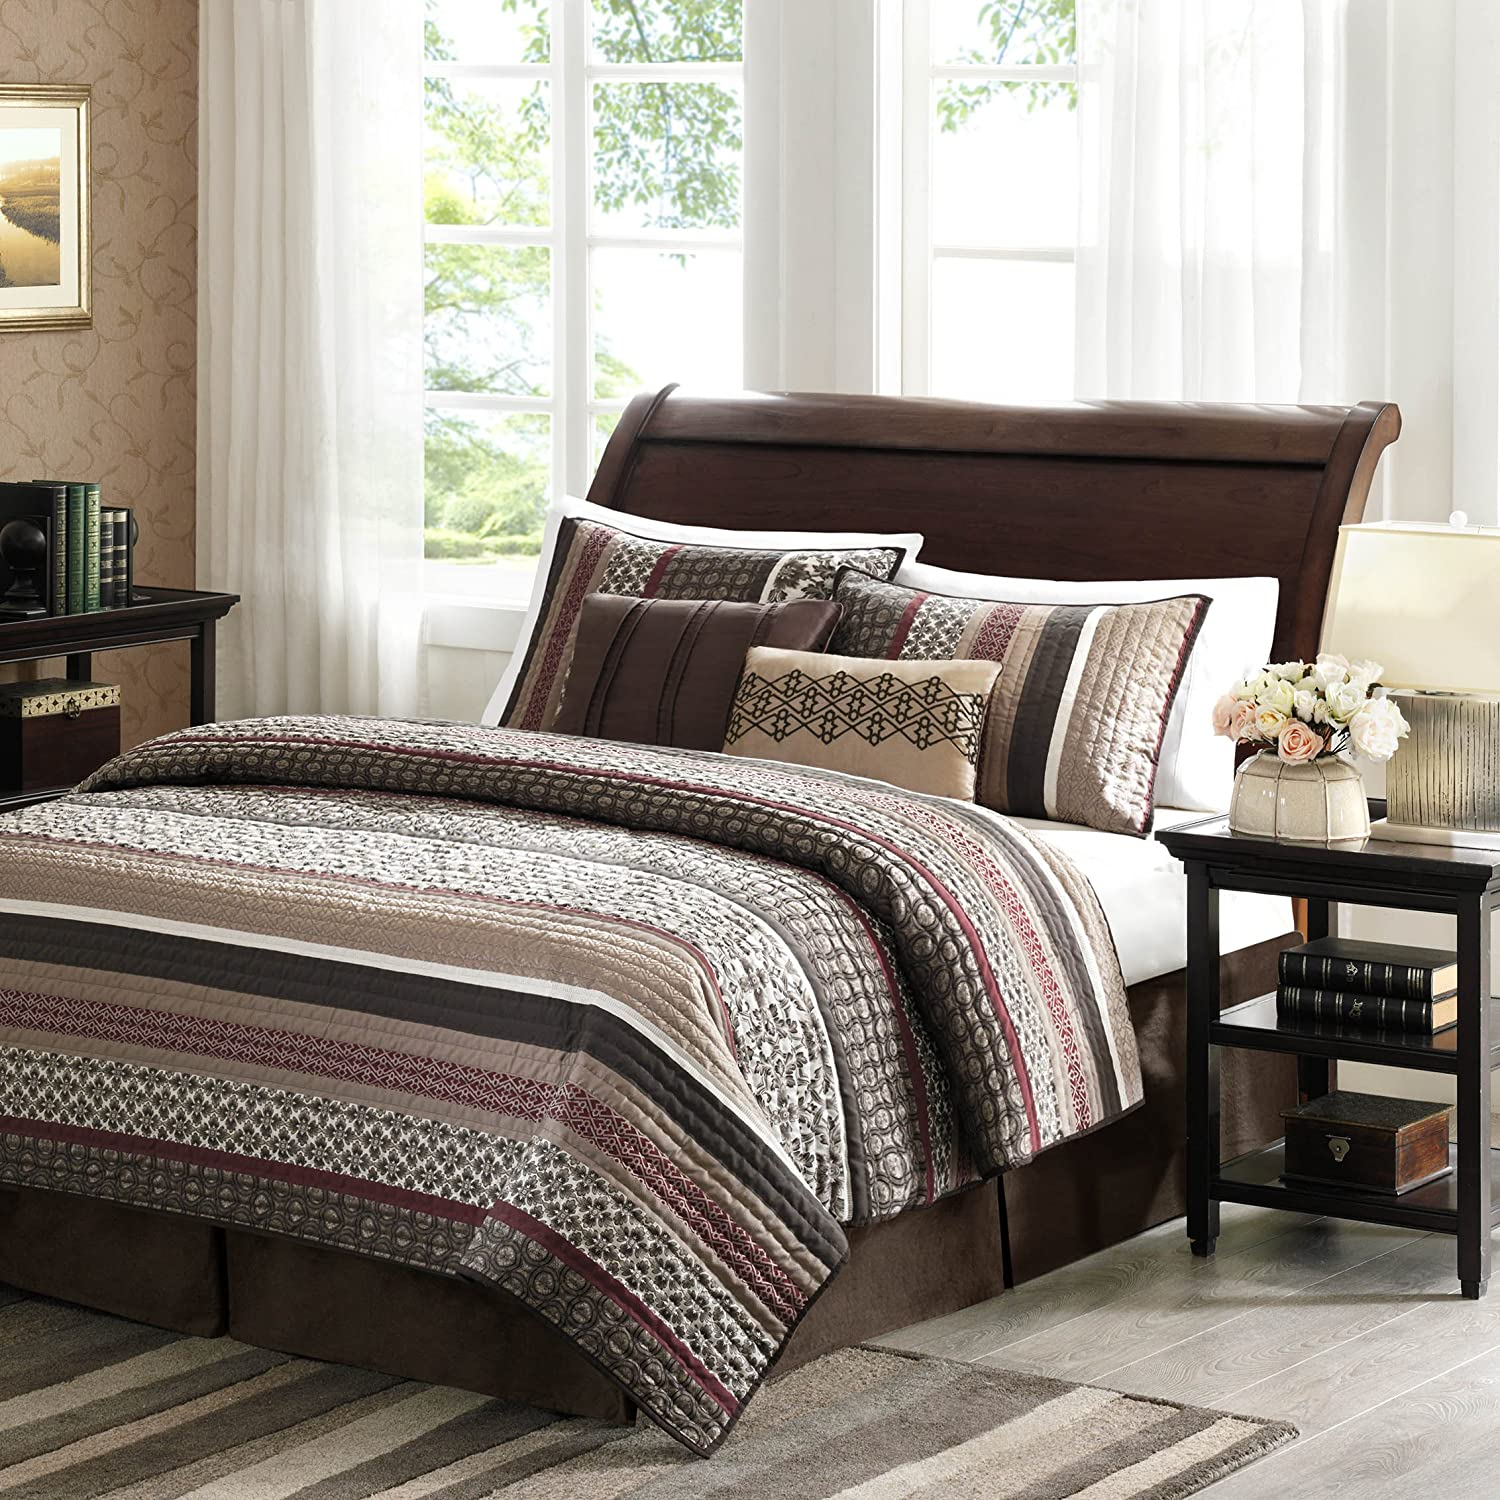 Brown and red bedding - Madison Park Princeton 5 Piece Quilted Coverlet Set King Red